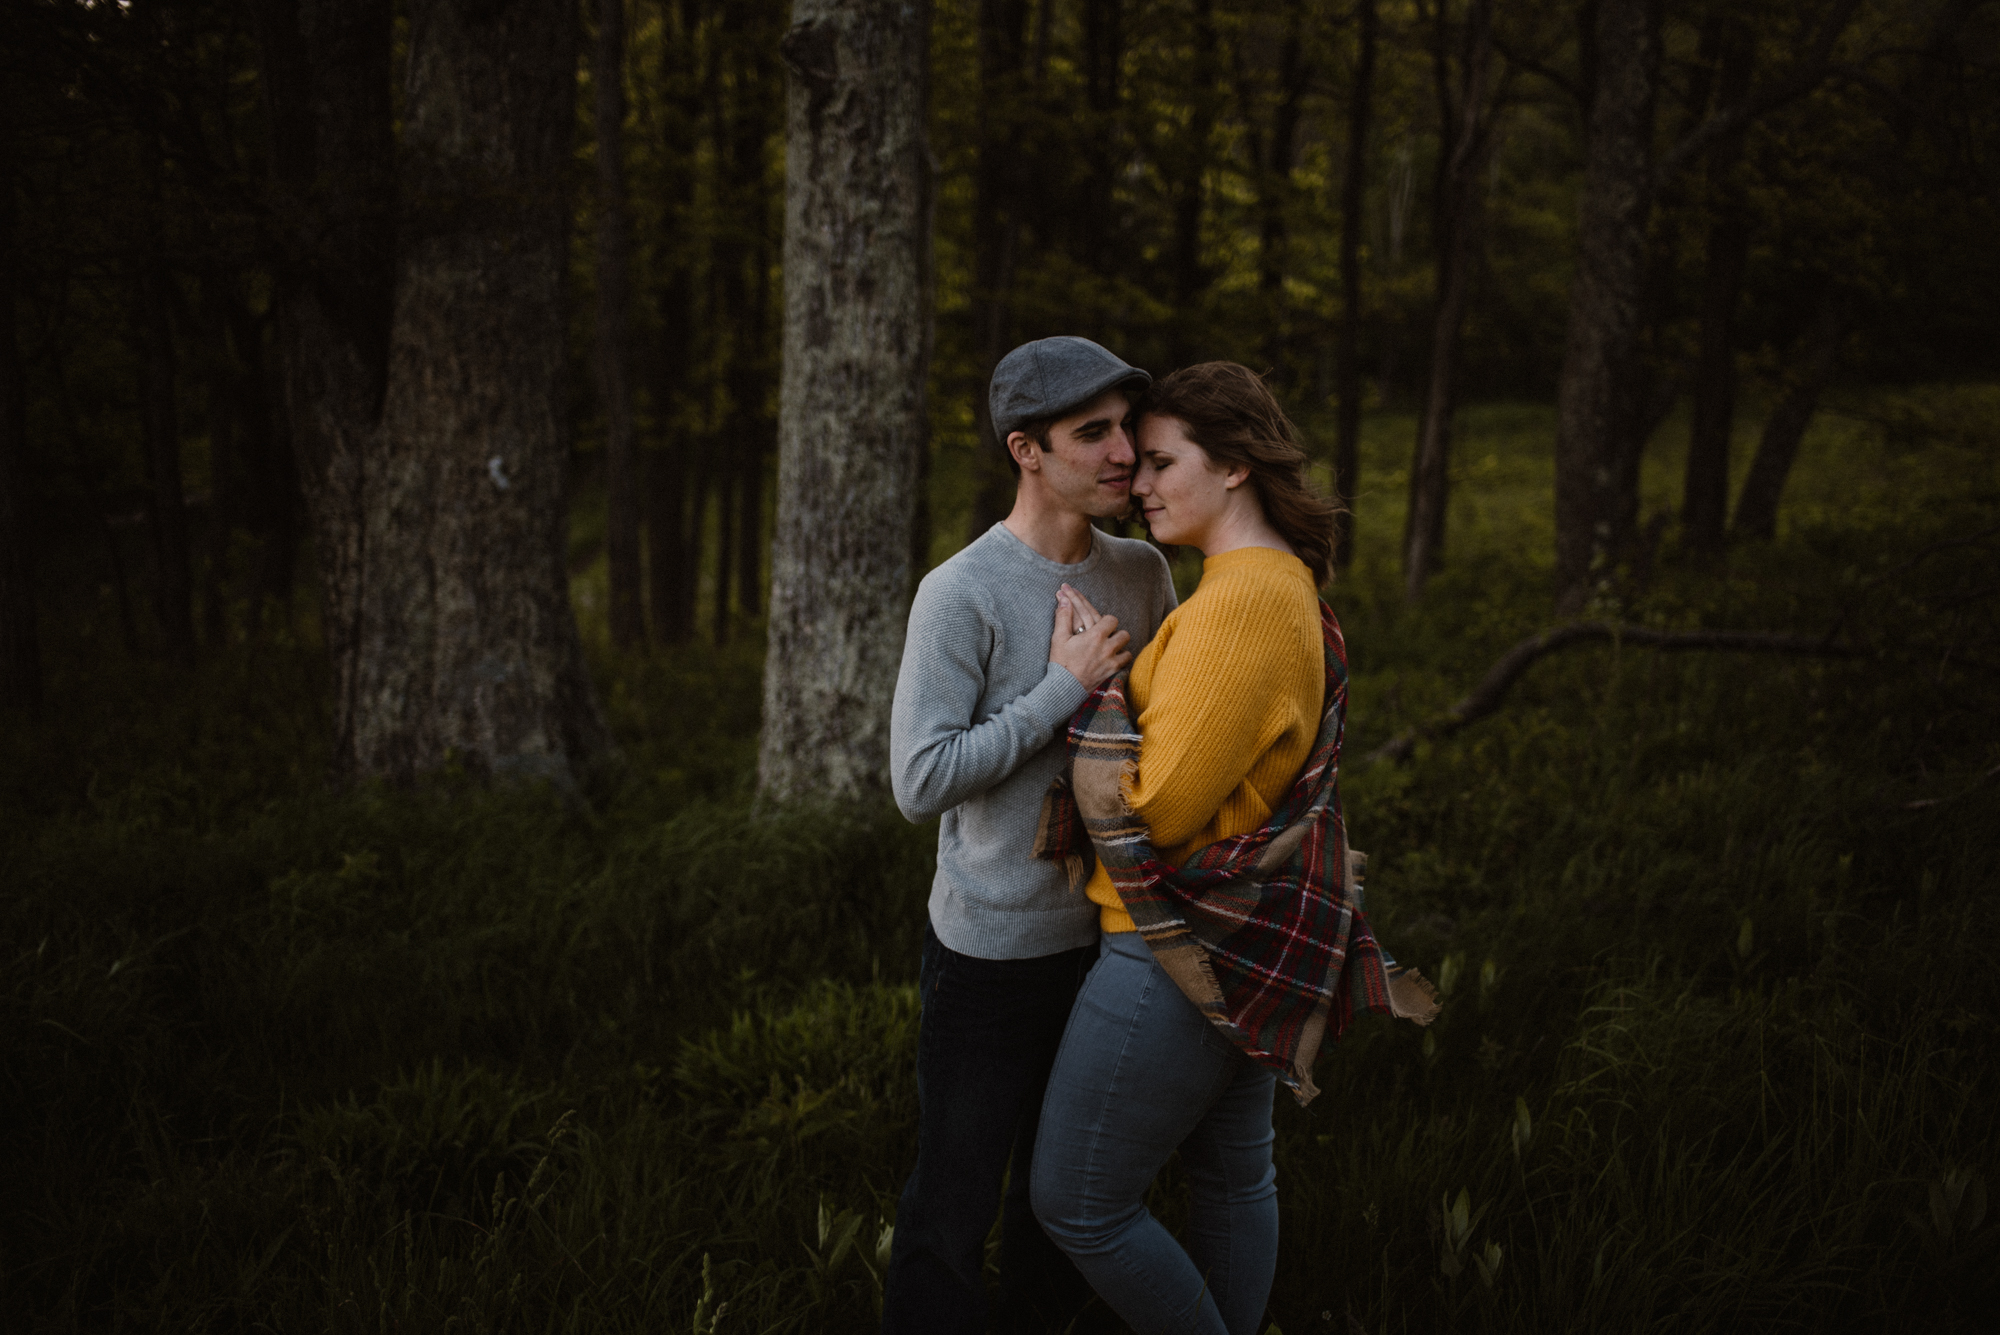 Sloane and Evan Sunrise Engagement Session in Shenandoah National Park - Things to Do in Luray Virginia - Adventurous Couple Photo Shoot White Sails Creative_18.jpg